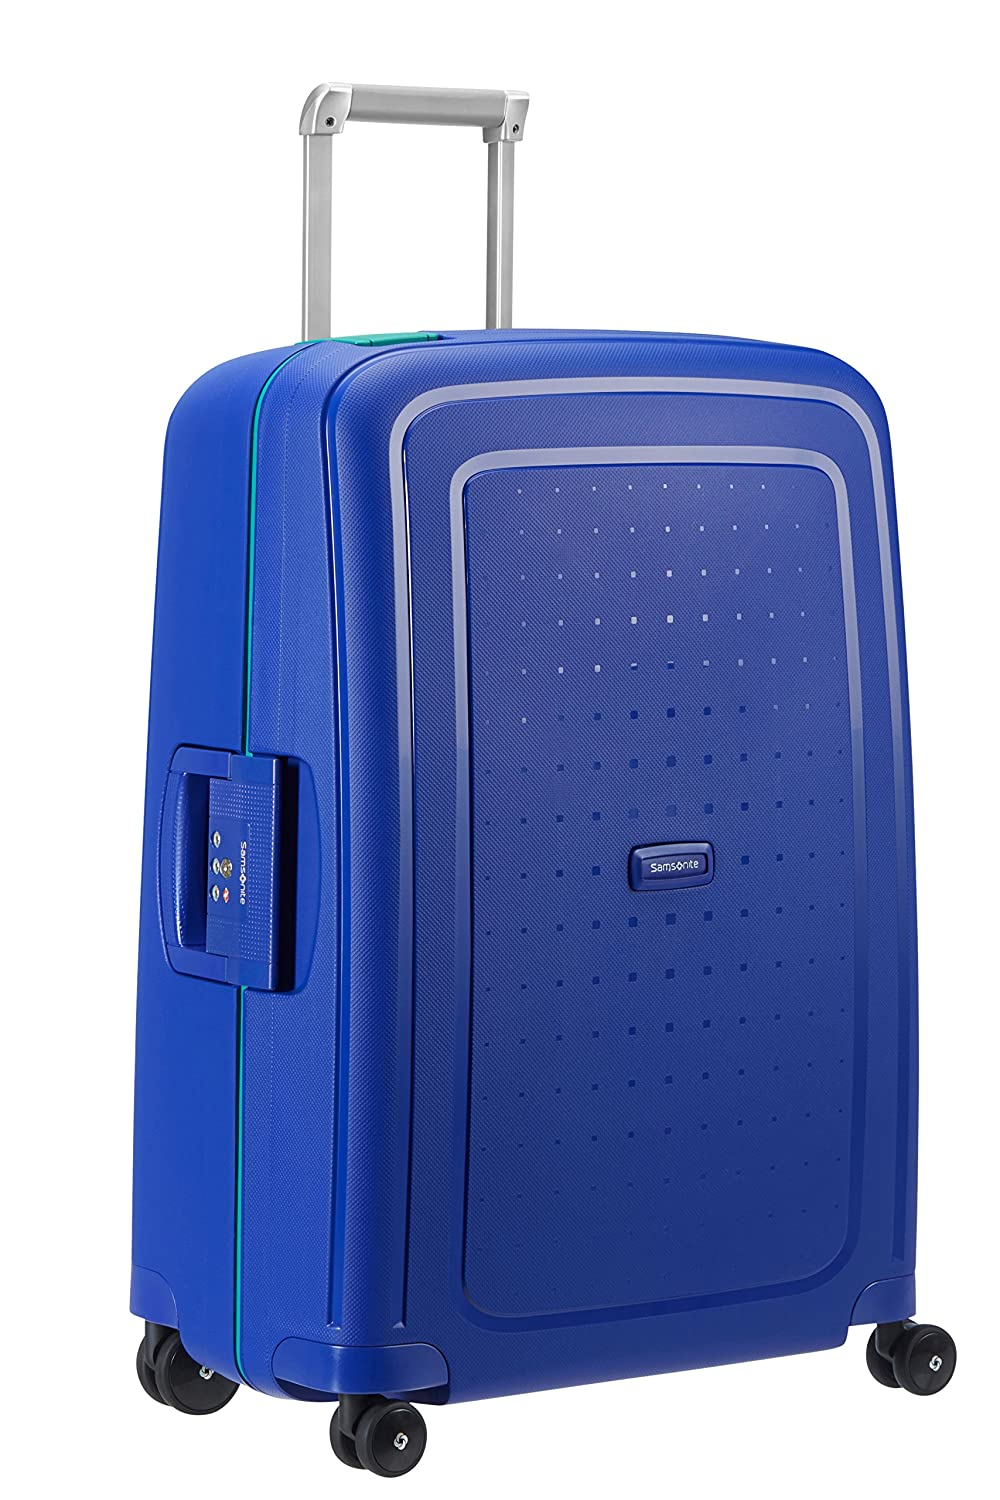 Valise rigide Samsonite S'Cure 75 cm Navy Blue/Capri Blue bleu